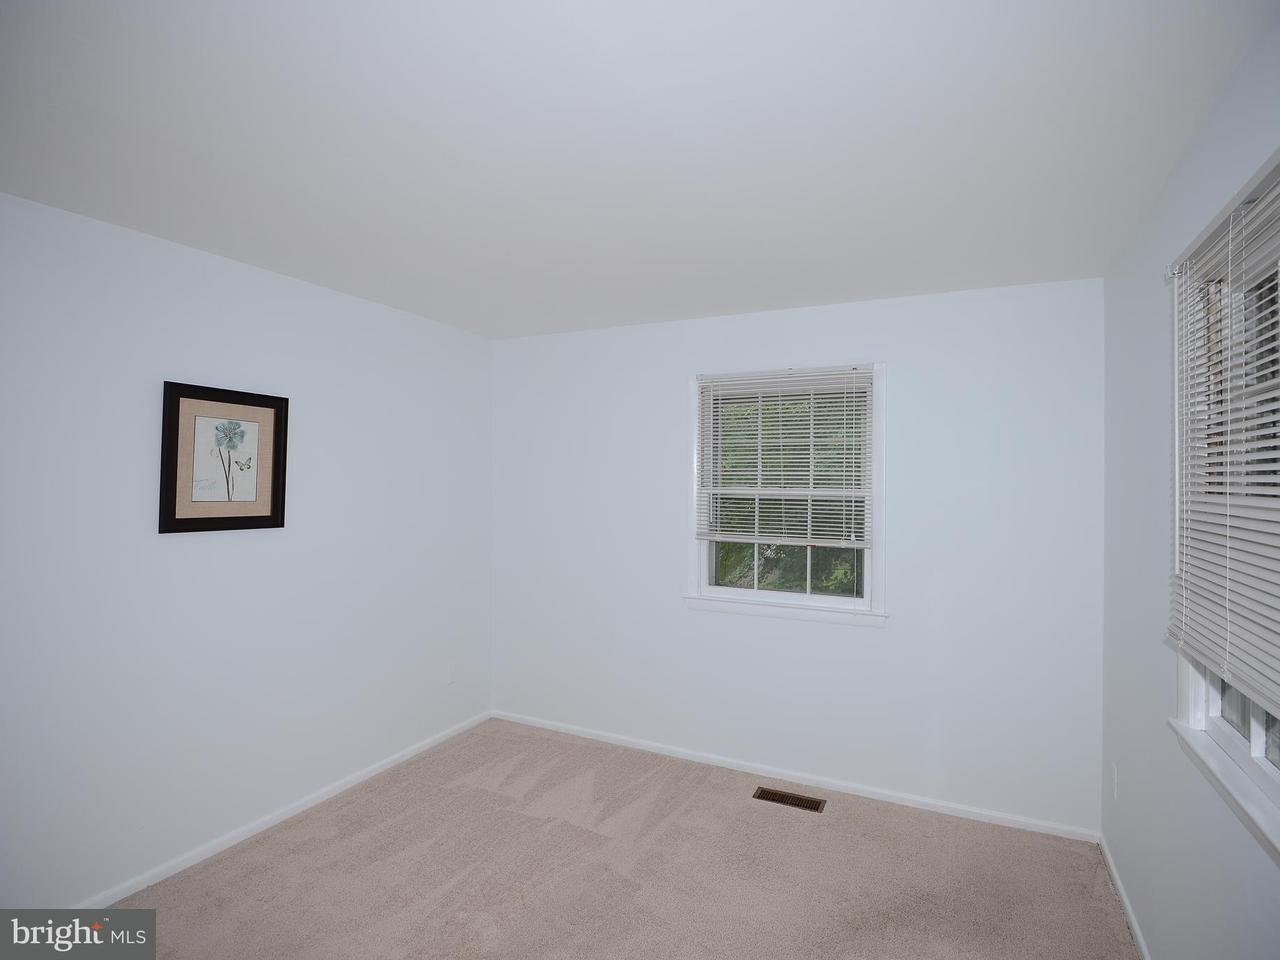 Additional photo for property listing at 10226 Confederate Lane 10226 Confederate Lane Fairfax, 弗吉尼亞州 22030 美國